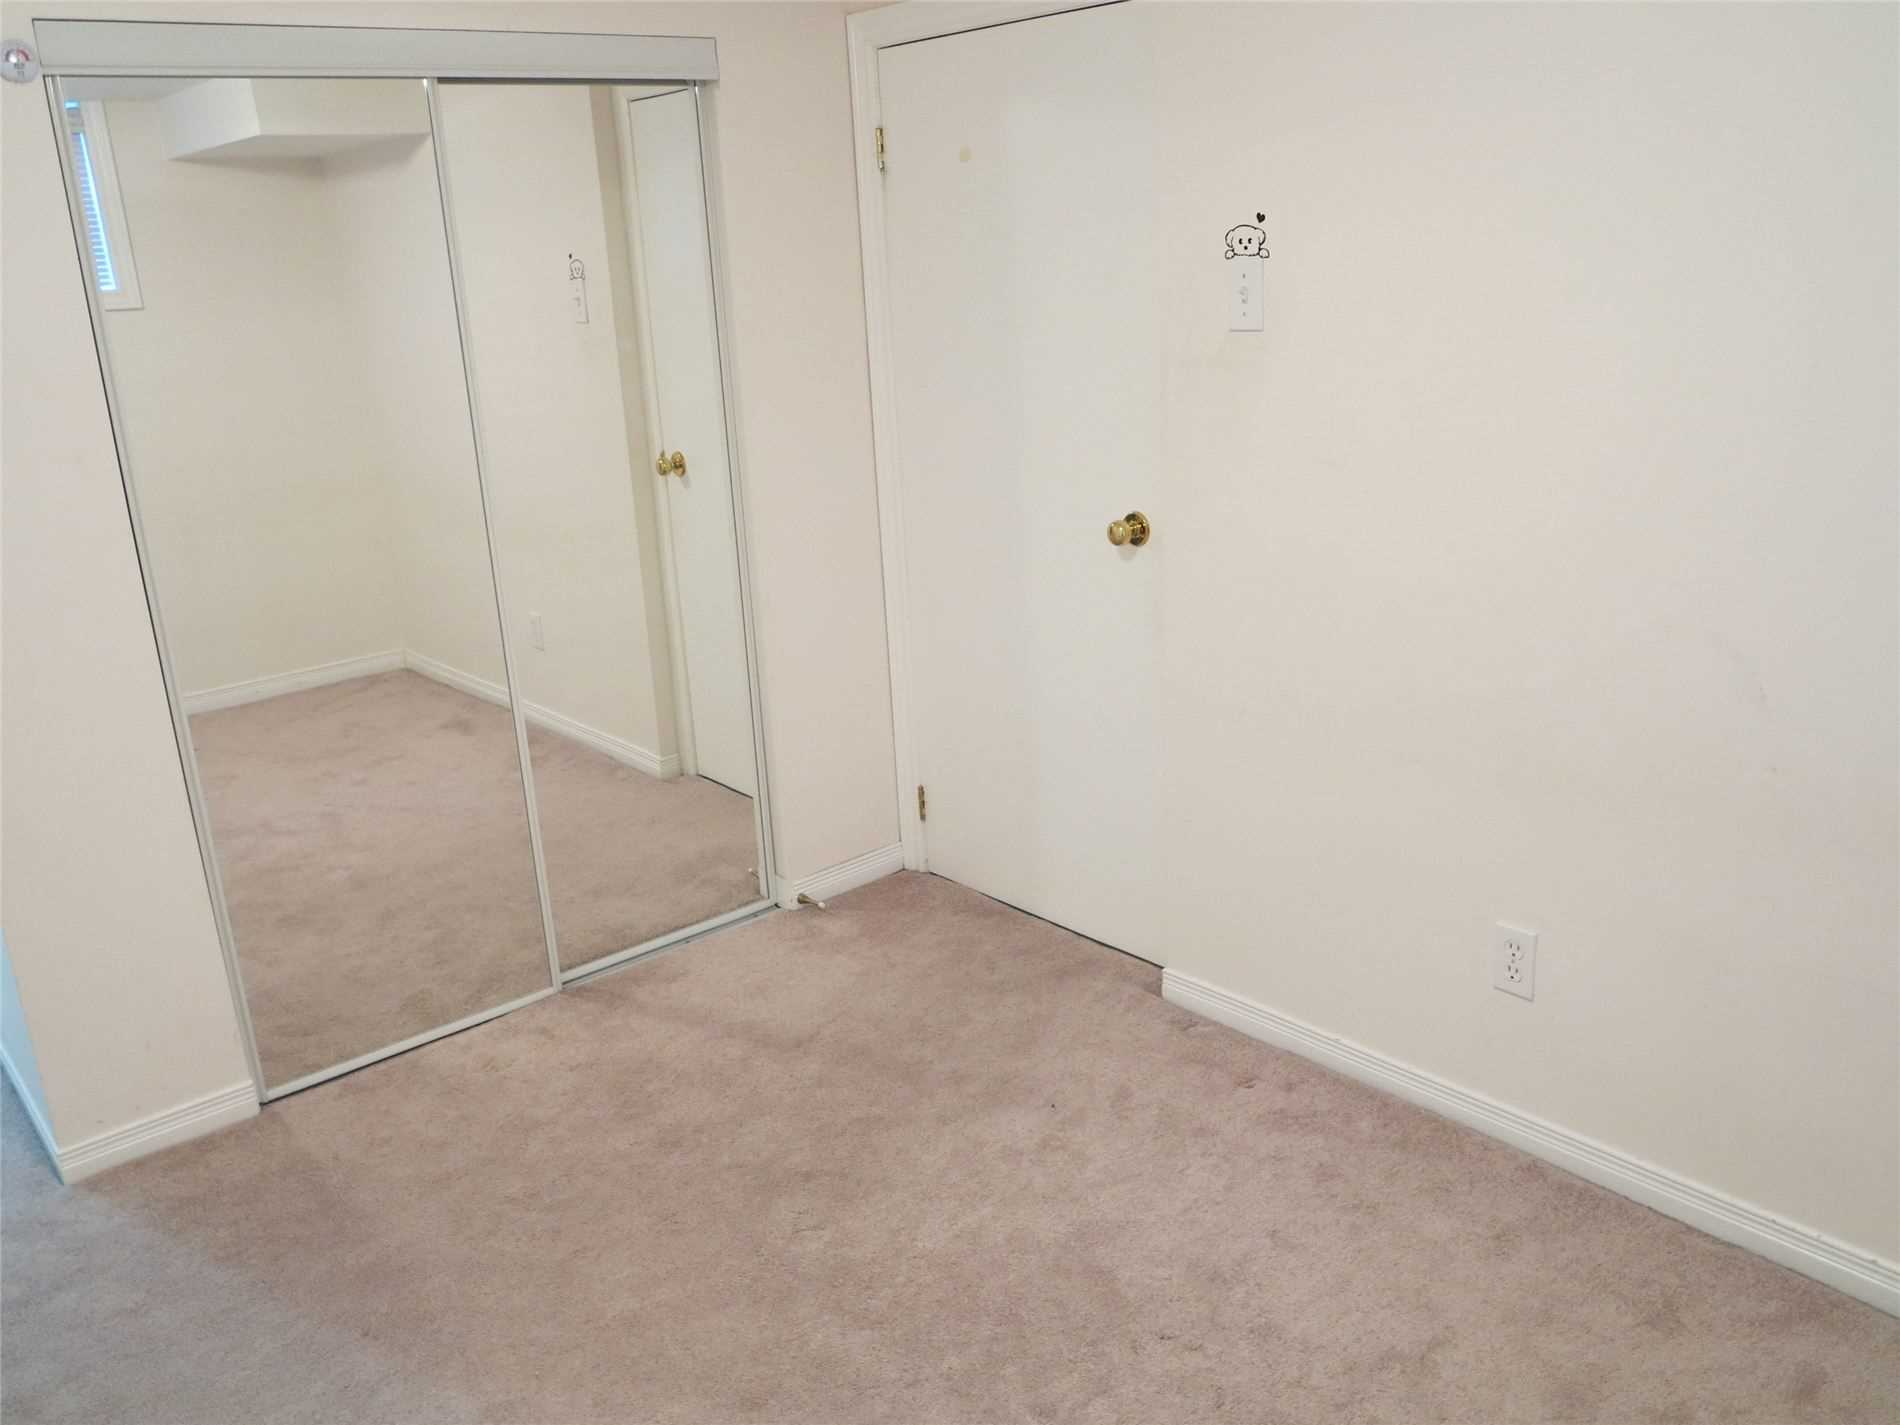 Image 5 of 30 showing inside of 3 Bedroom Detached Bungalow for Lease at 456 Drewry Ave, Toronto M2R2K7